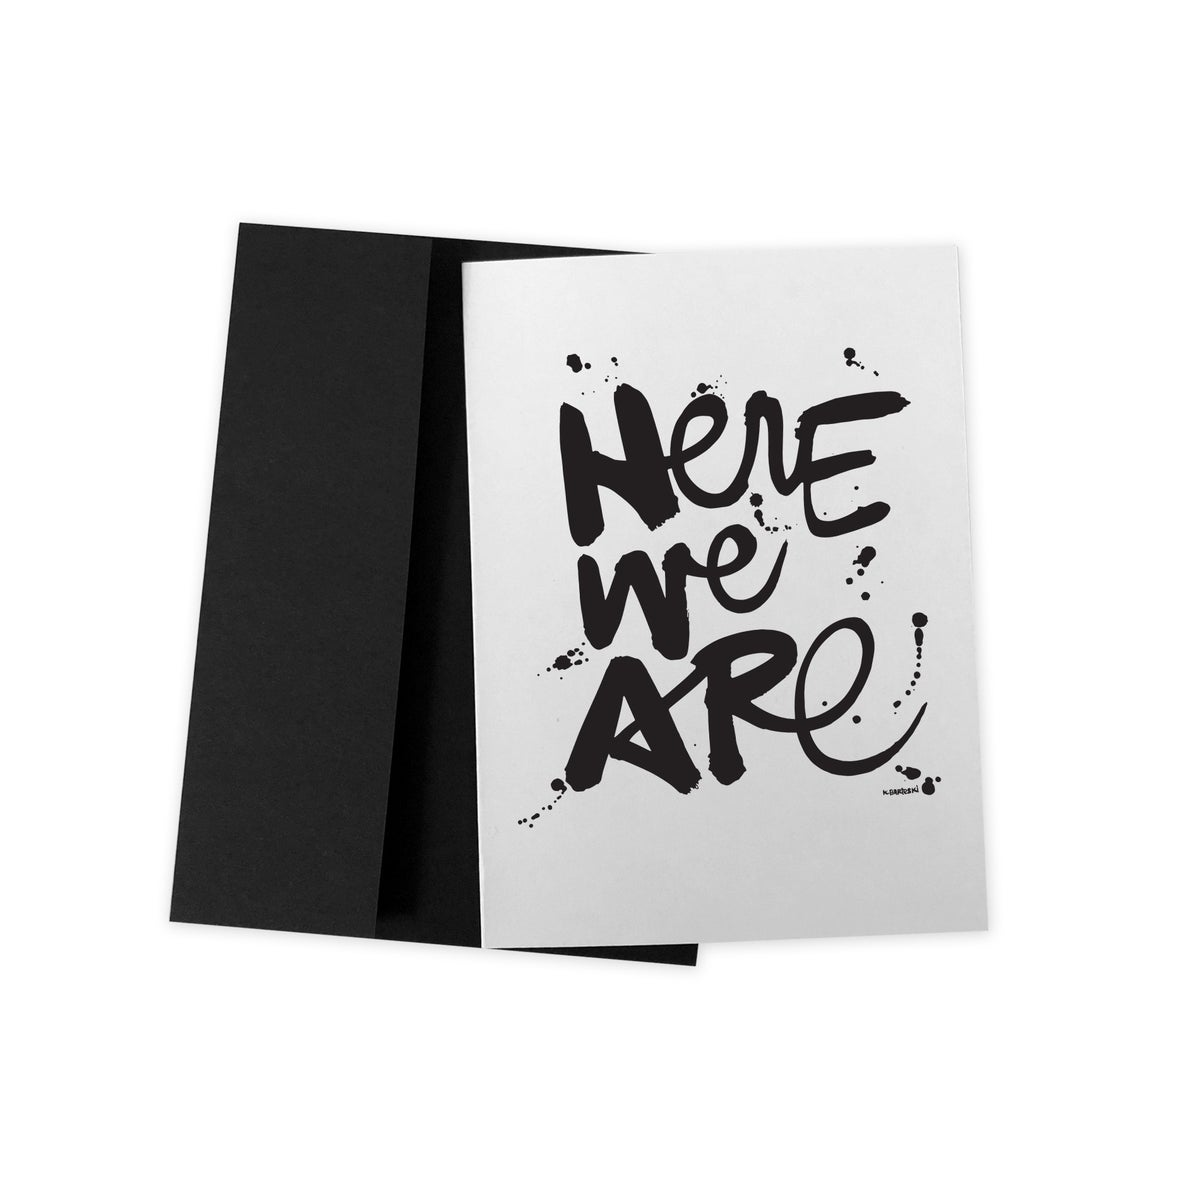 Image of HERE WE ARE #kbscript greeting card